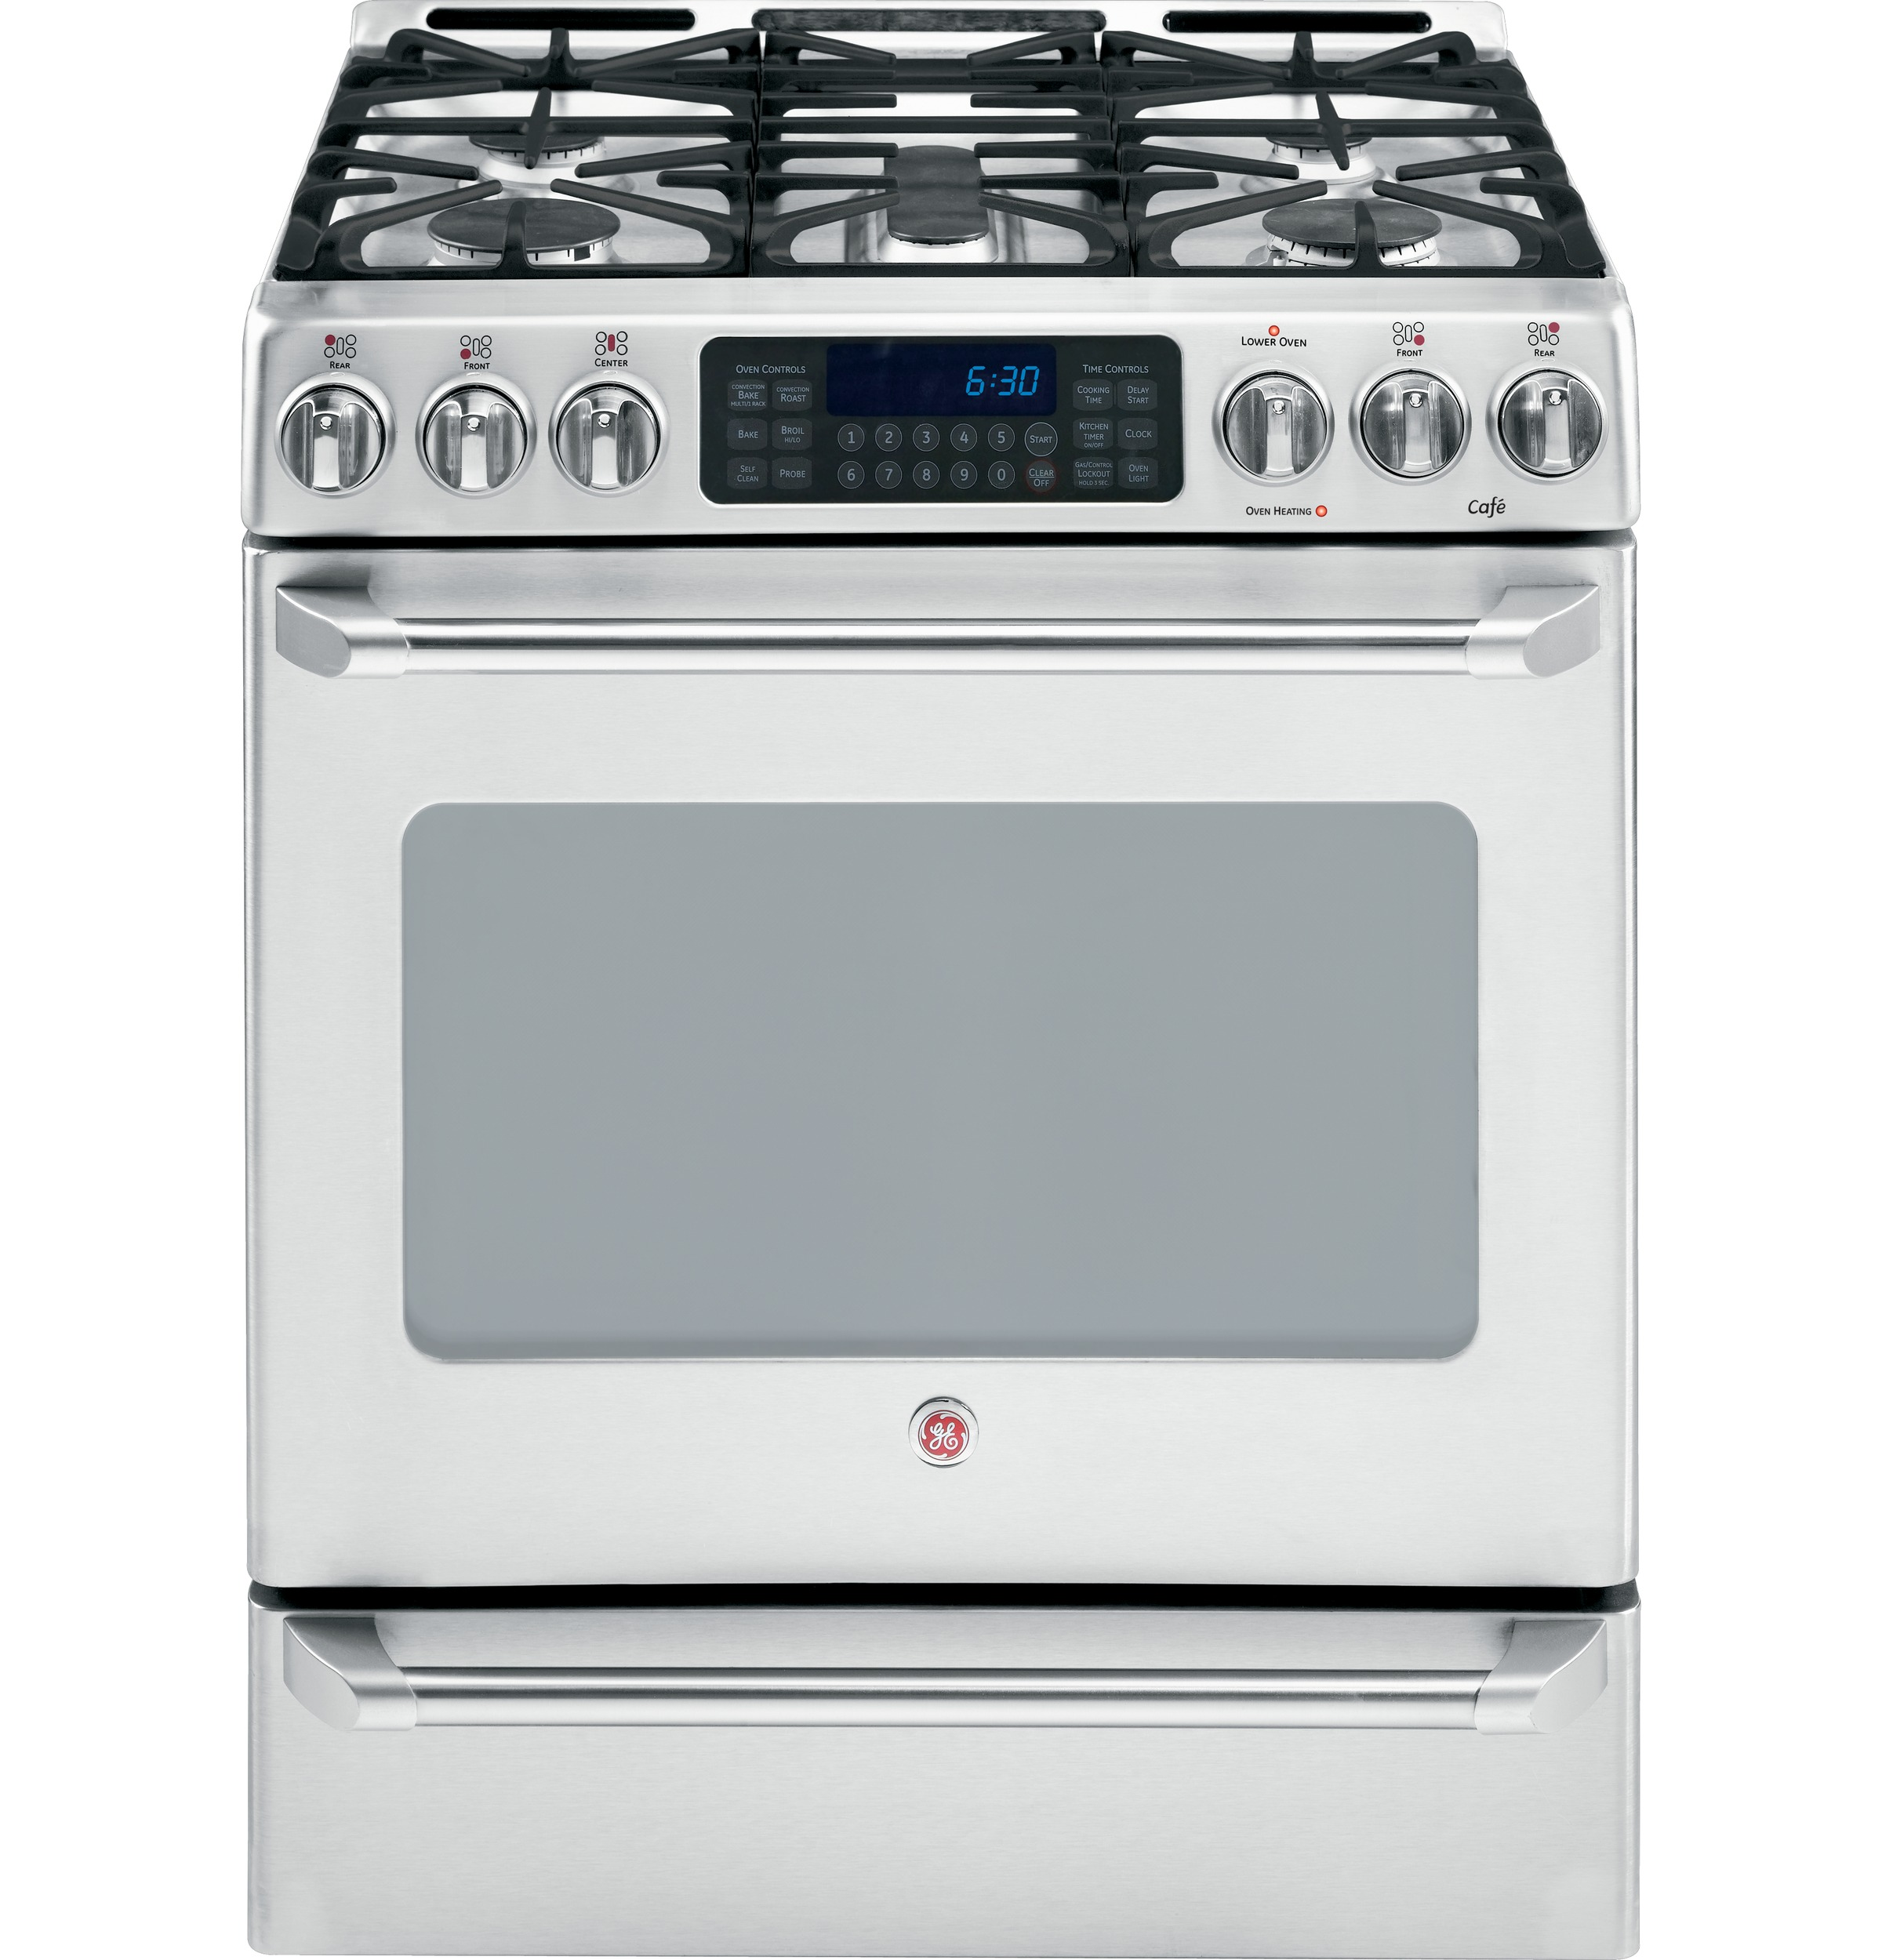 Ge cafe dual fuel slide in range - Product Image Product Image